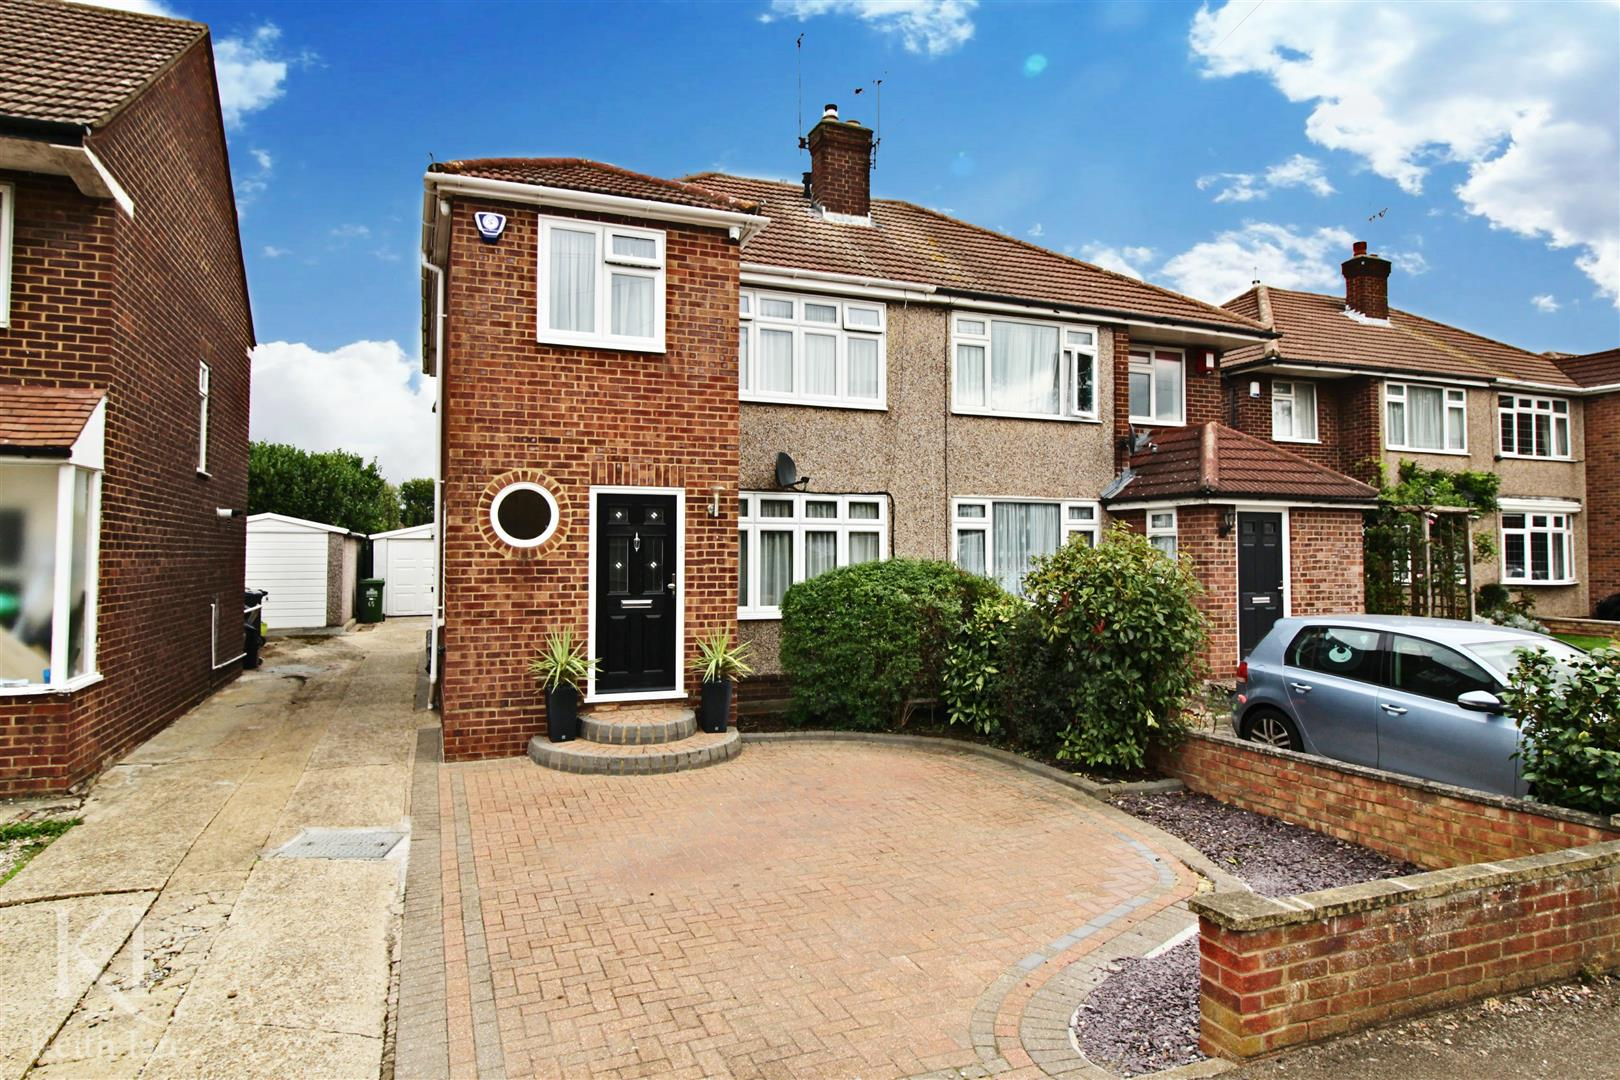 Palmers Way, Cheshunt - Beautiful 3 Bedroom Semi, Walking Distance To Cheshunt station